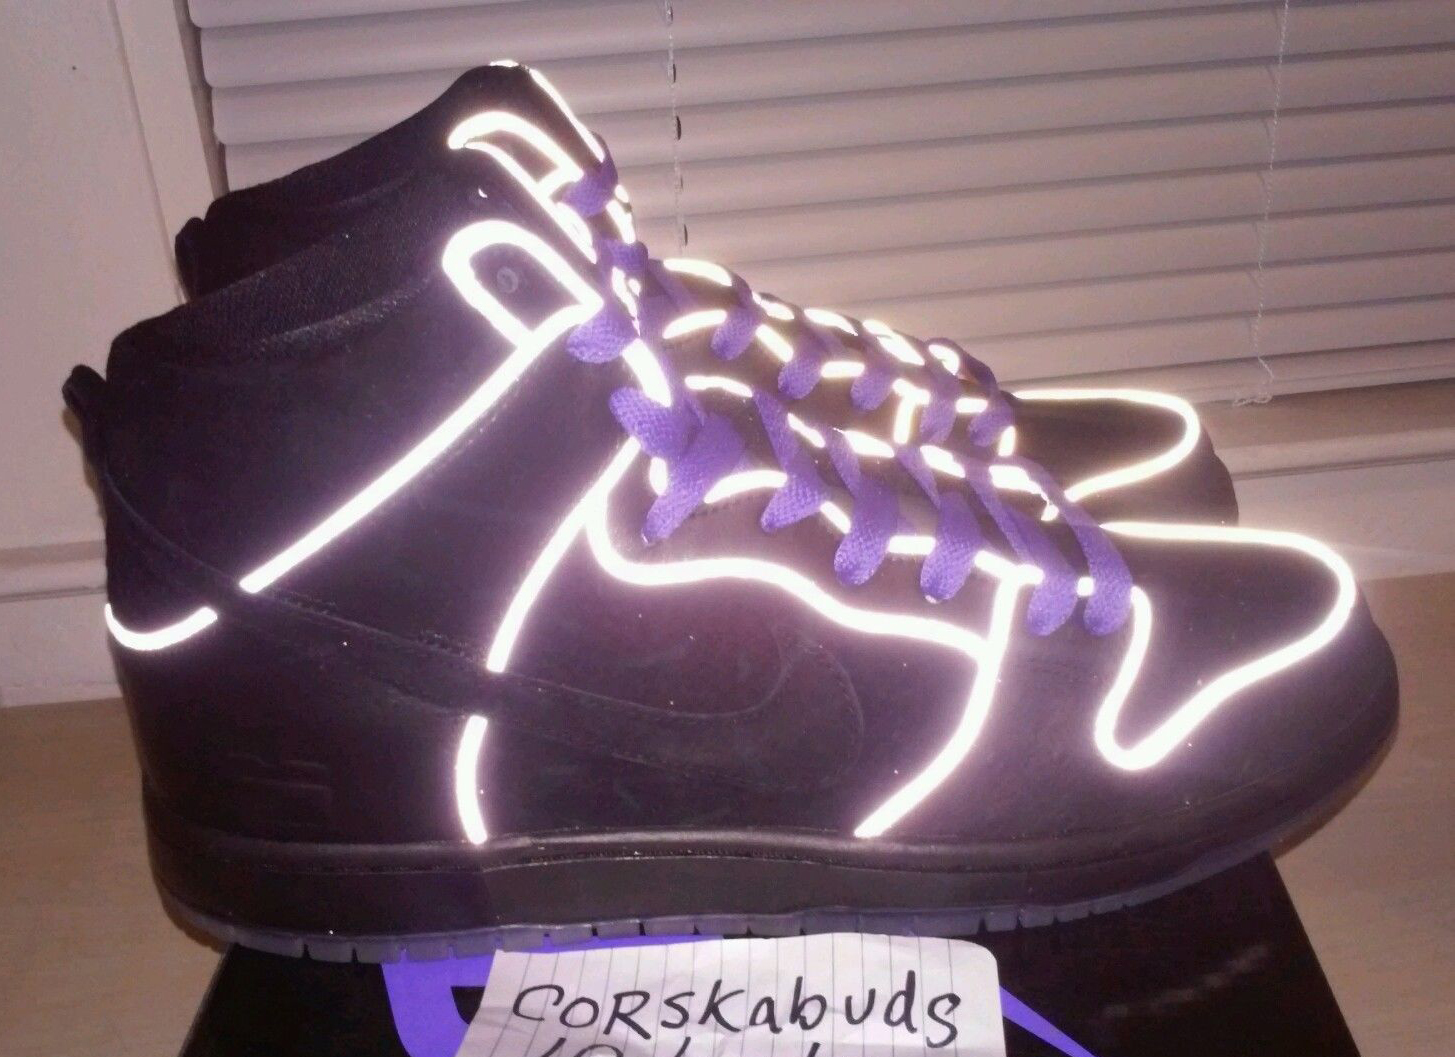 Nike SB Dunk High Purple Box 3M